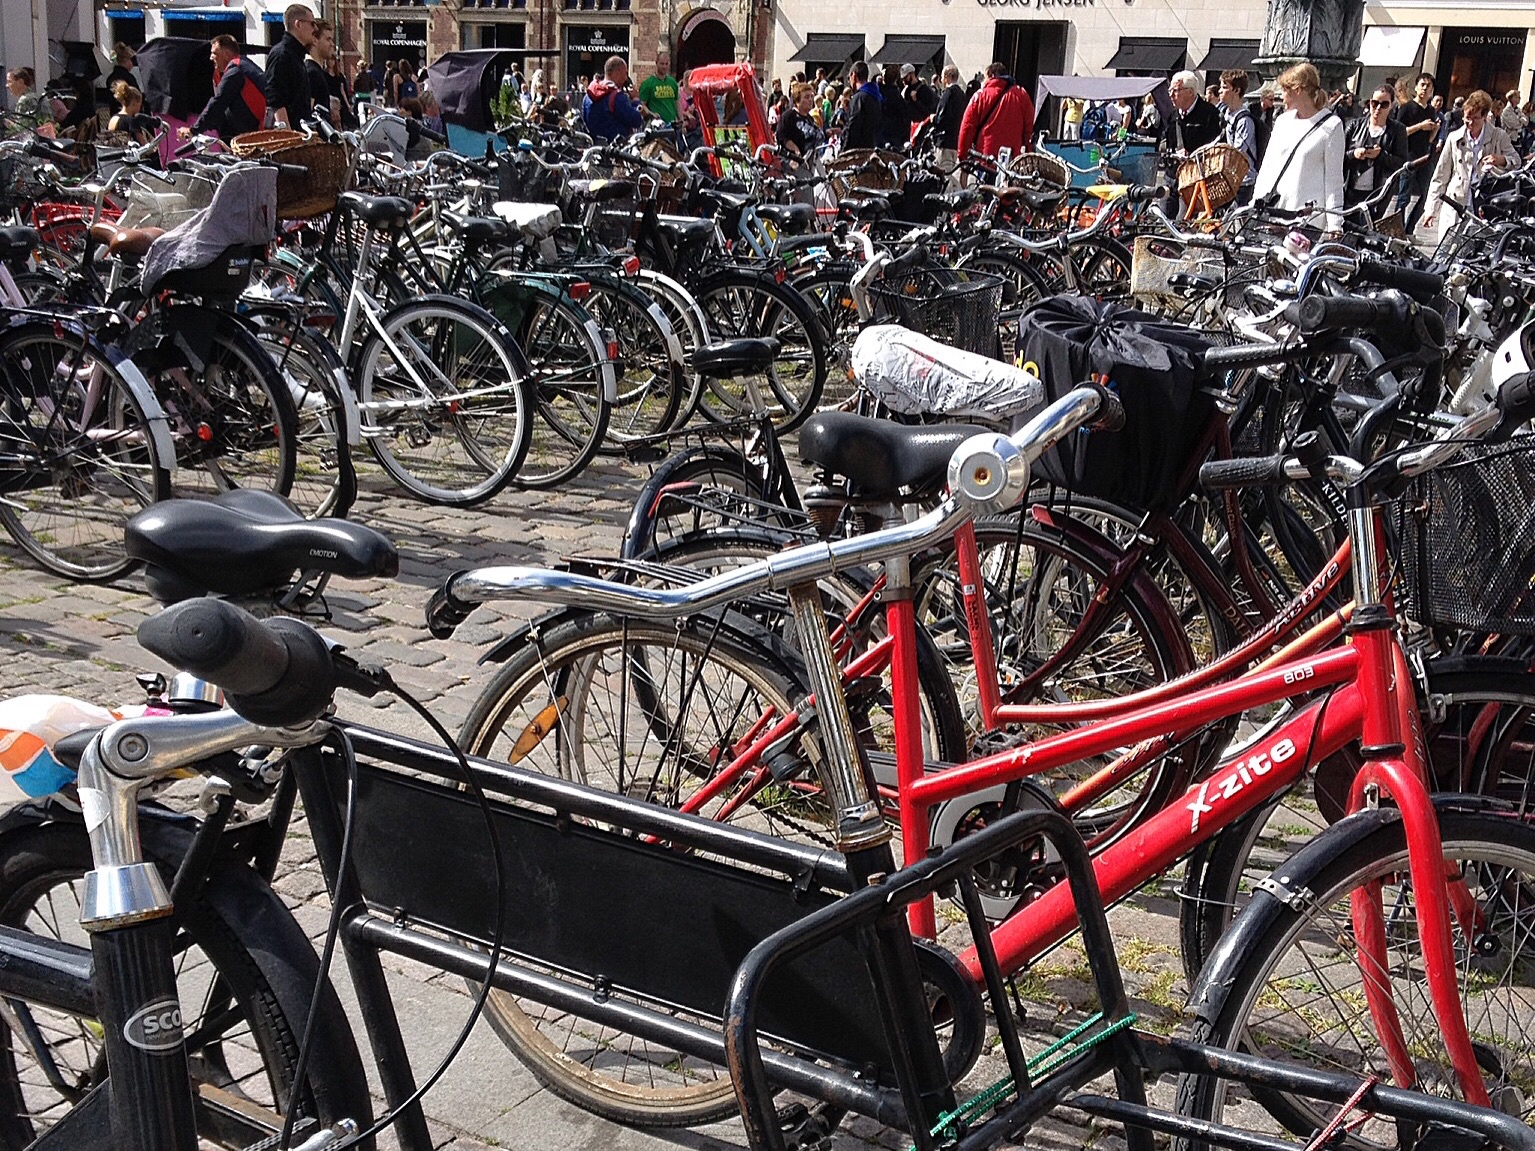 A common sight in Copenhagen - will it be repeated in Welsh towns and cities?